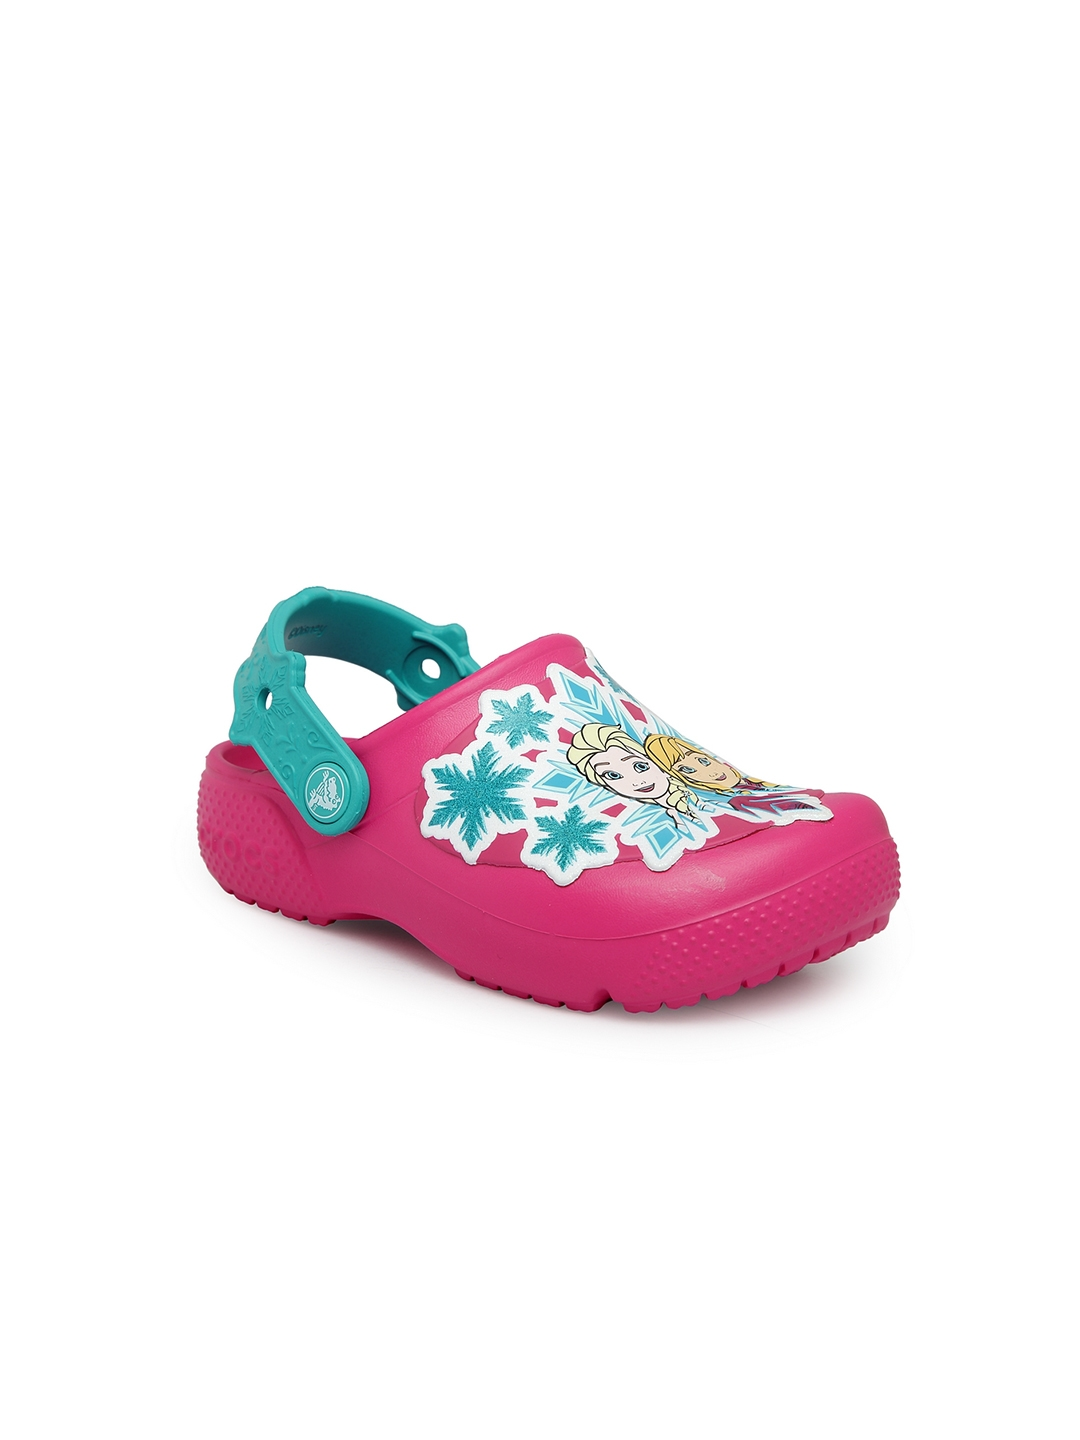 0469d7c3b8f Buy Crocs Girls Pink   Turquoise Blue Clogs - Sandals for Girls ...